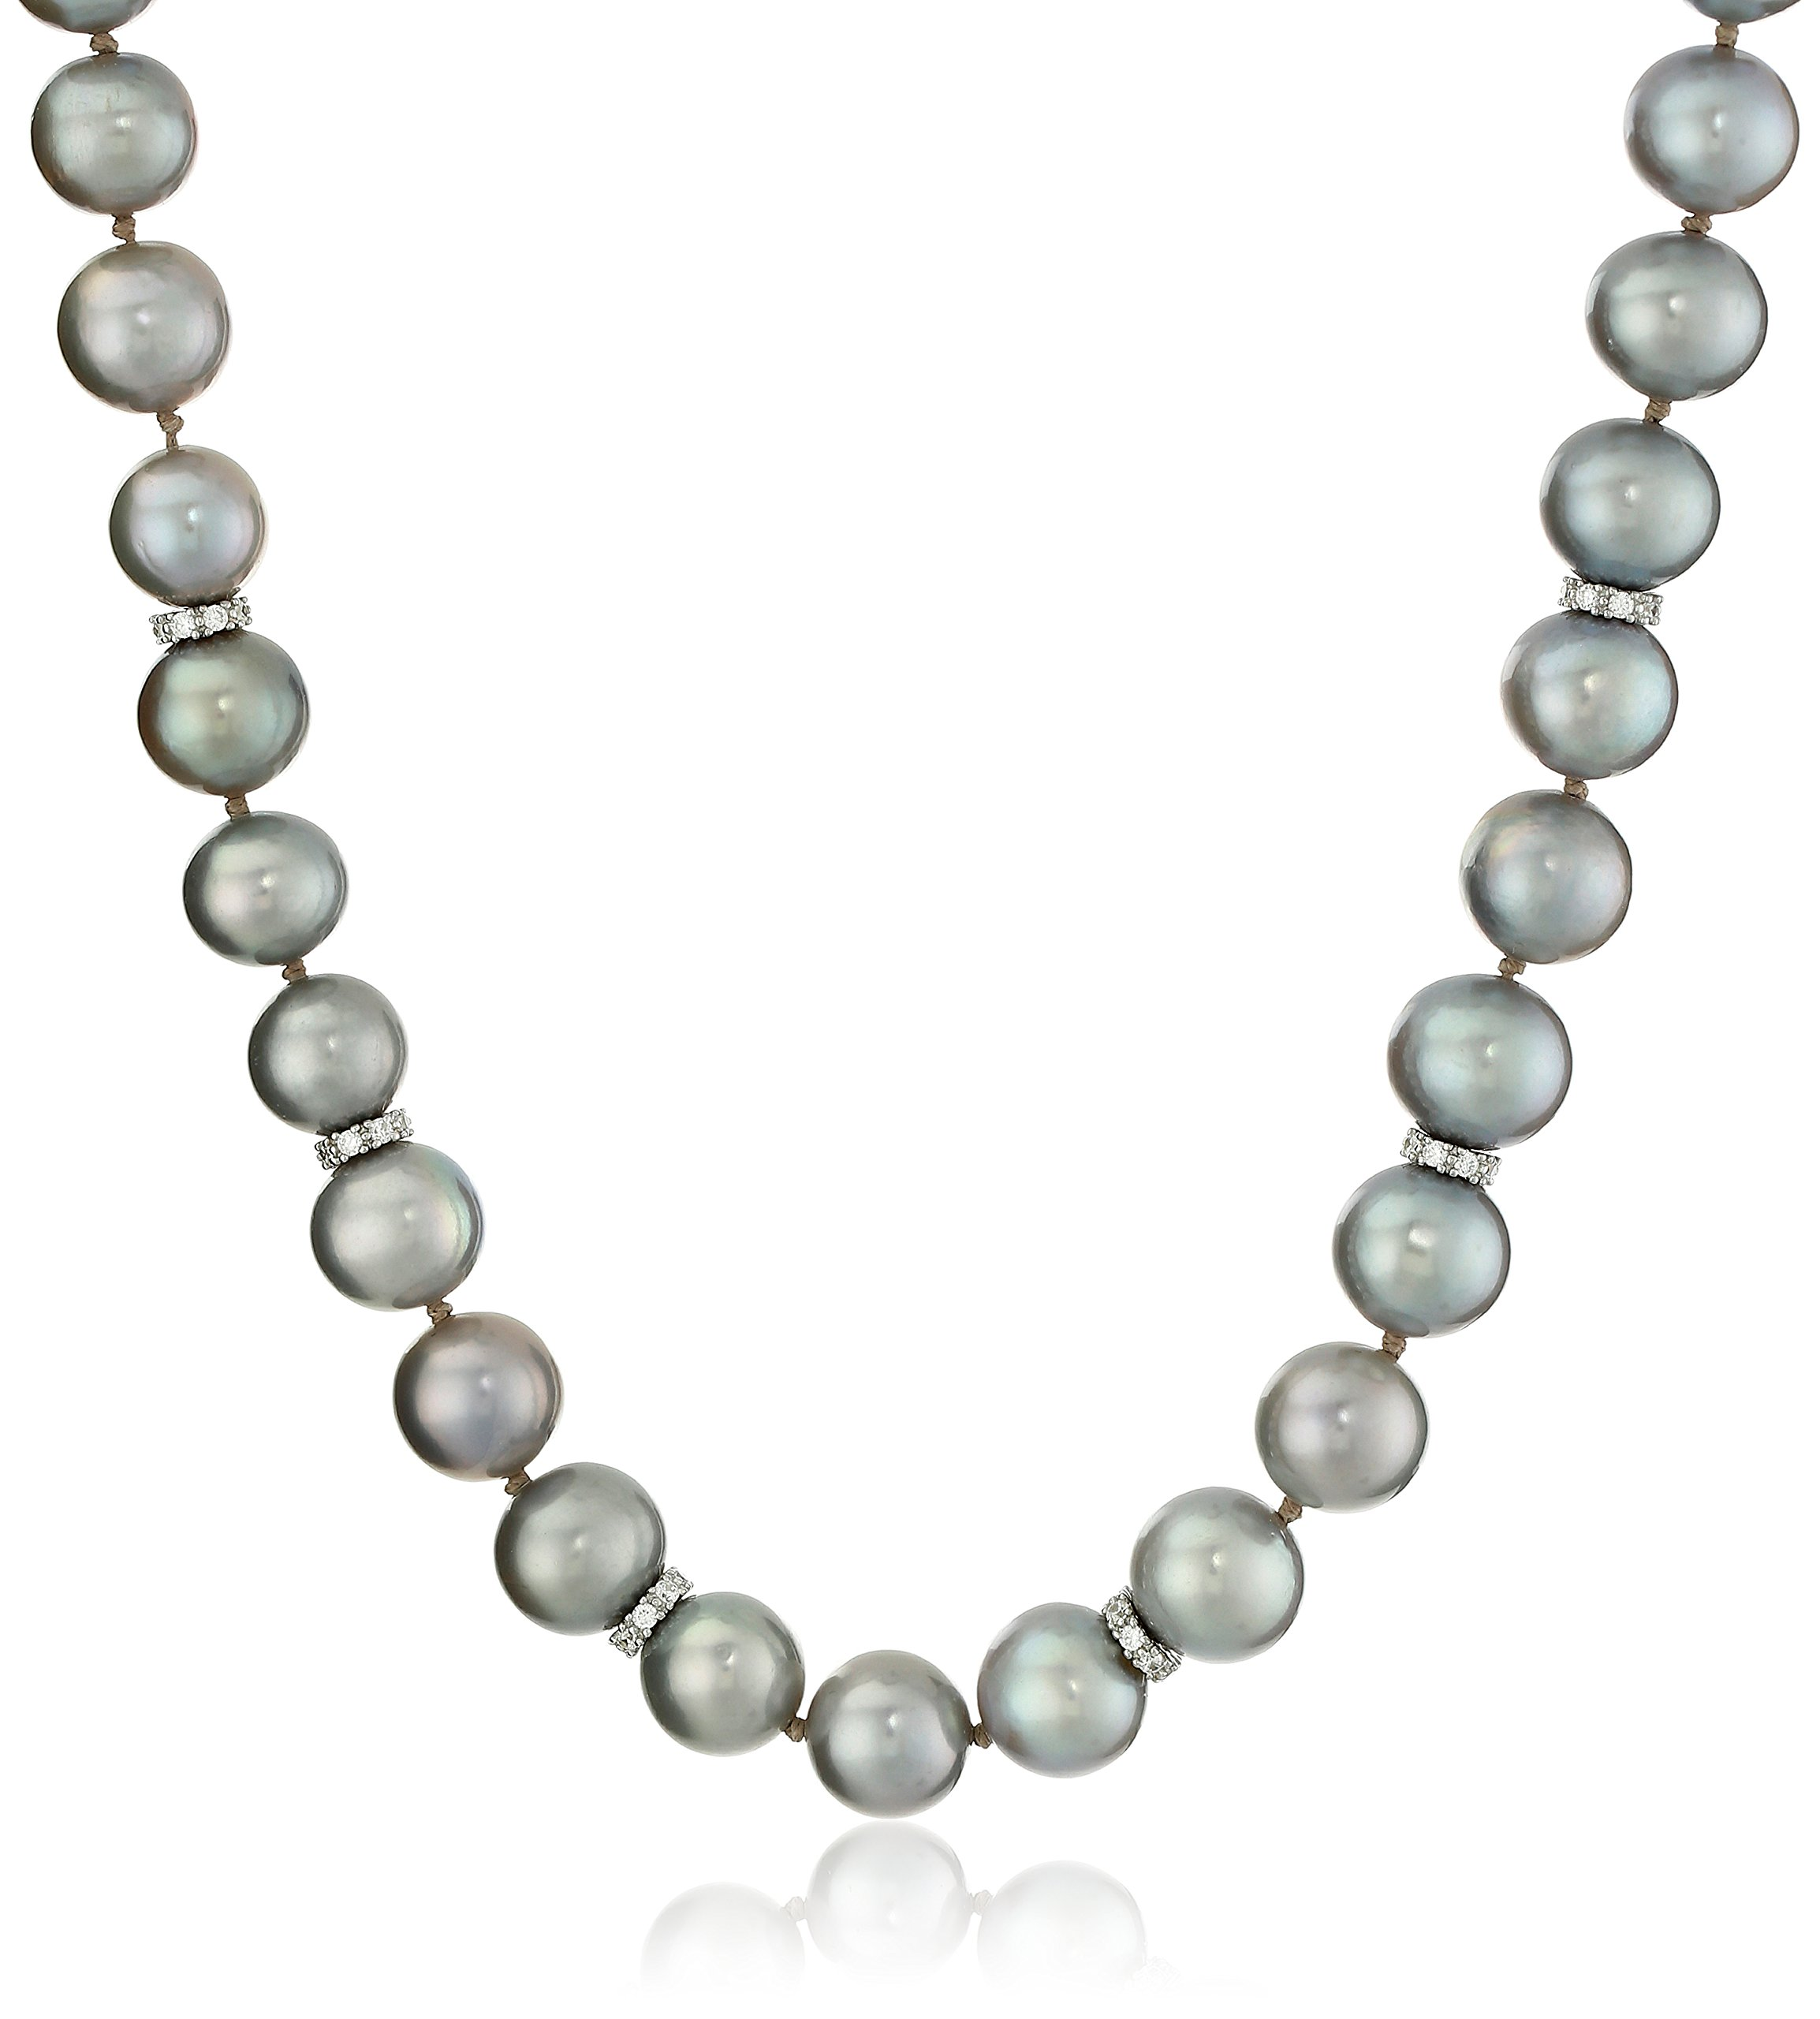 Sterling Silver 10-11mm Dyed Grey Freshwater Cultured Pearl Strand with 2mm Cubic Zirconia, 18''